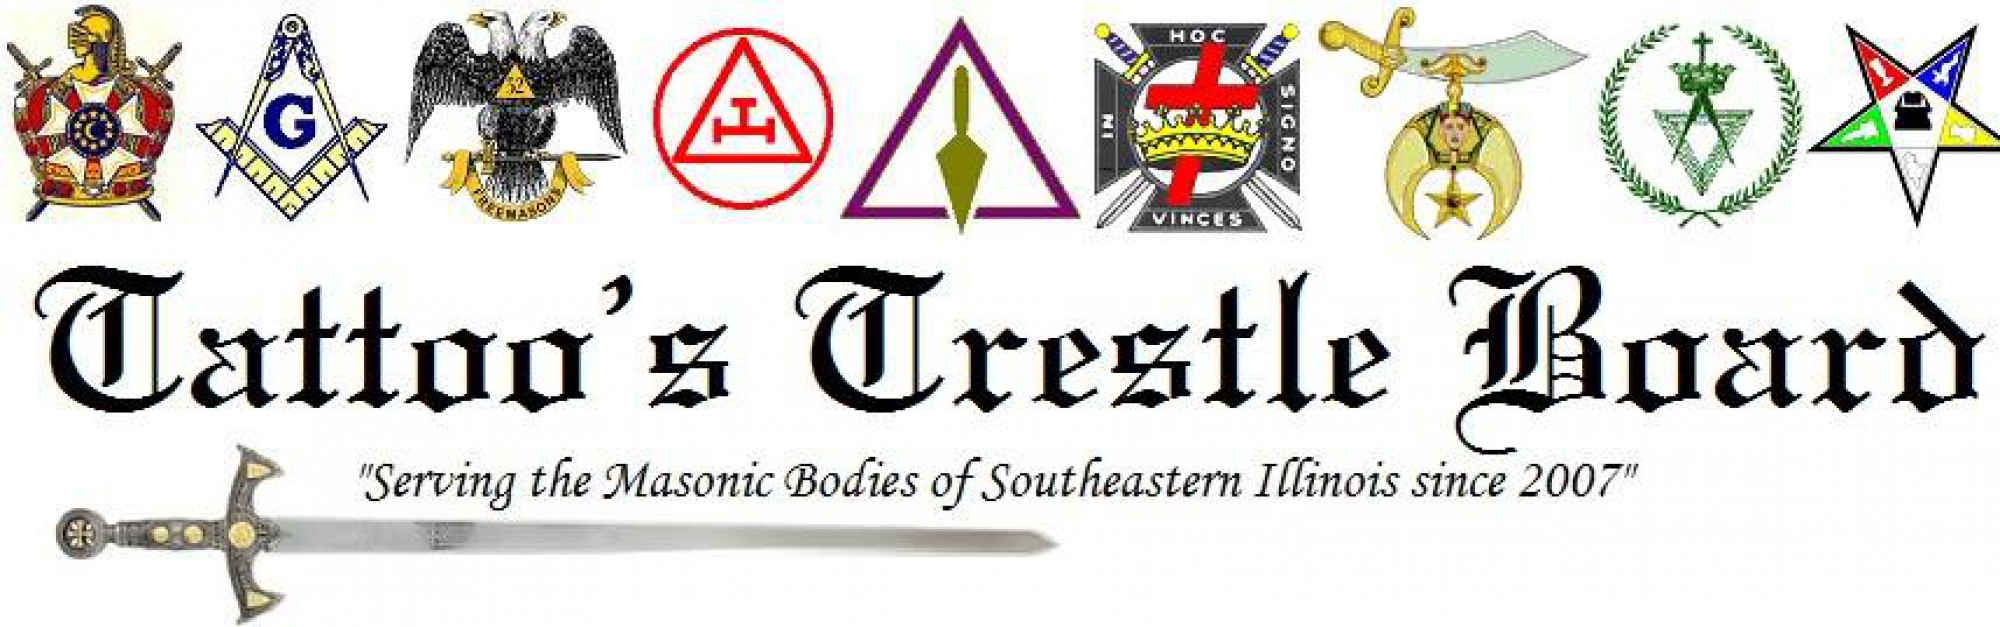 Welcome to Tattoo's Trestle Board!! This is a current list of all Masonic functions happening in southeastern Illinois. Tattoo's Trestle Board has been serving the Masonic Bodies of Southeastern Illinois since 2007. Any new functions, corrections or cancellations should be emailed to tattoostrestleboard@gmail.com